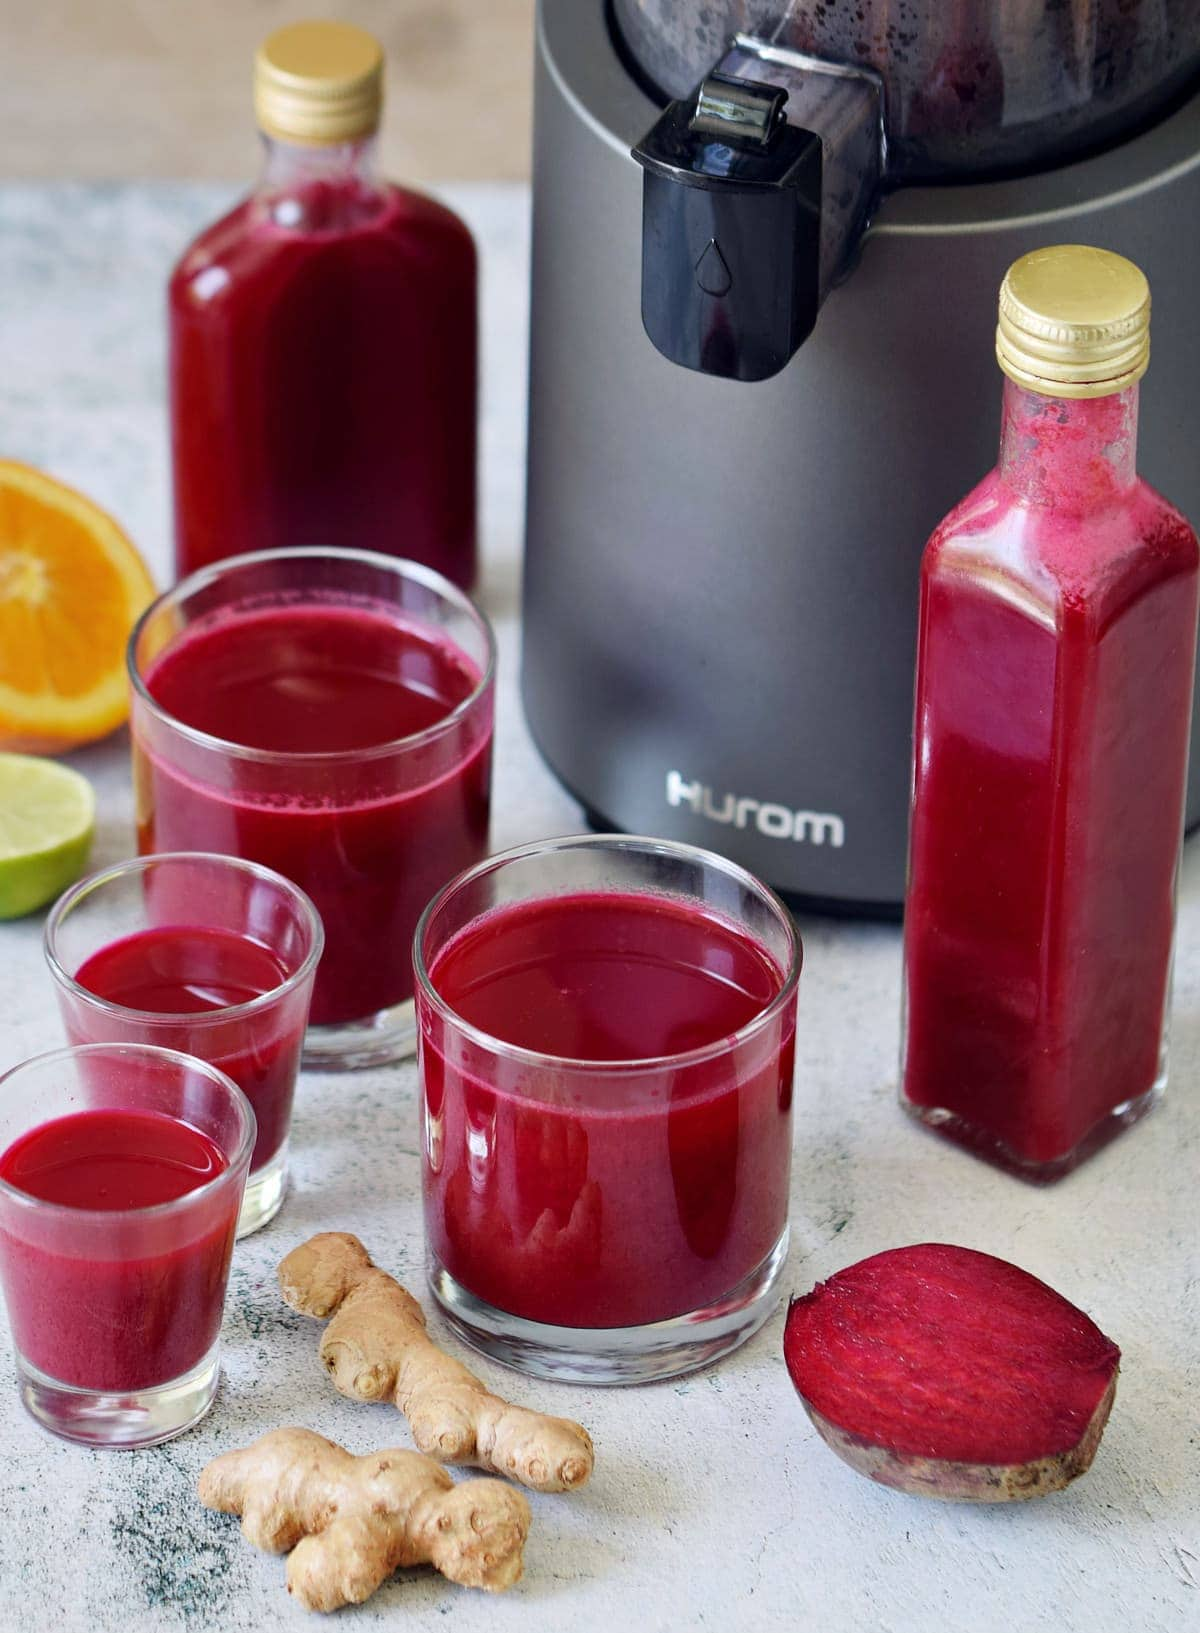 immune boosting juices with Hurom juicer